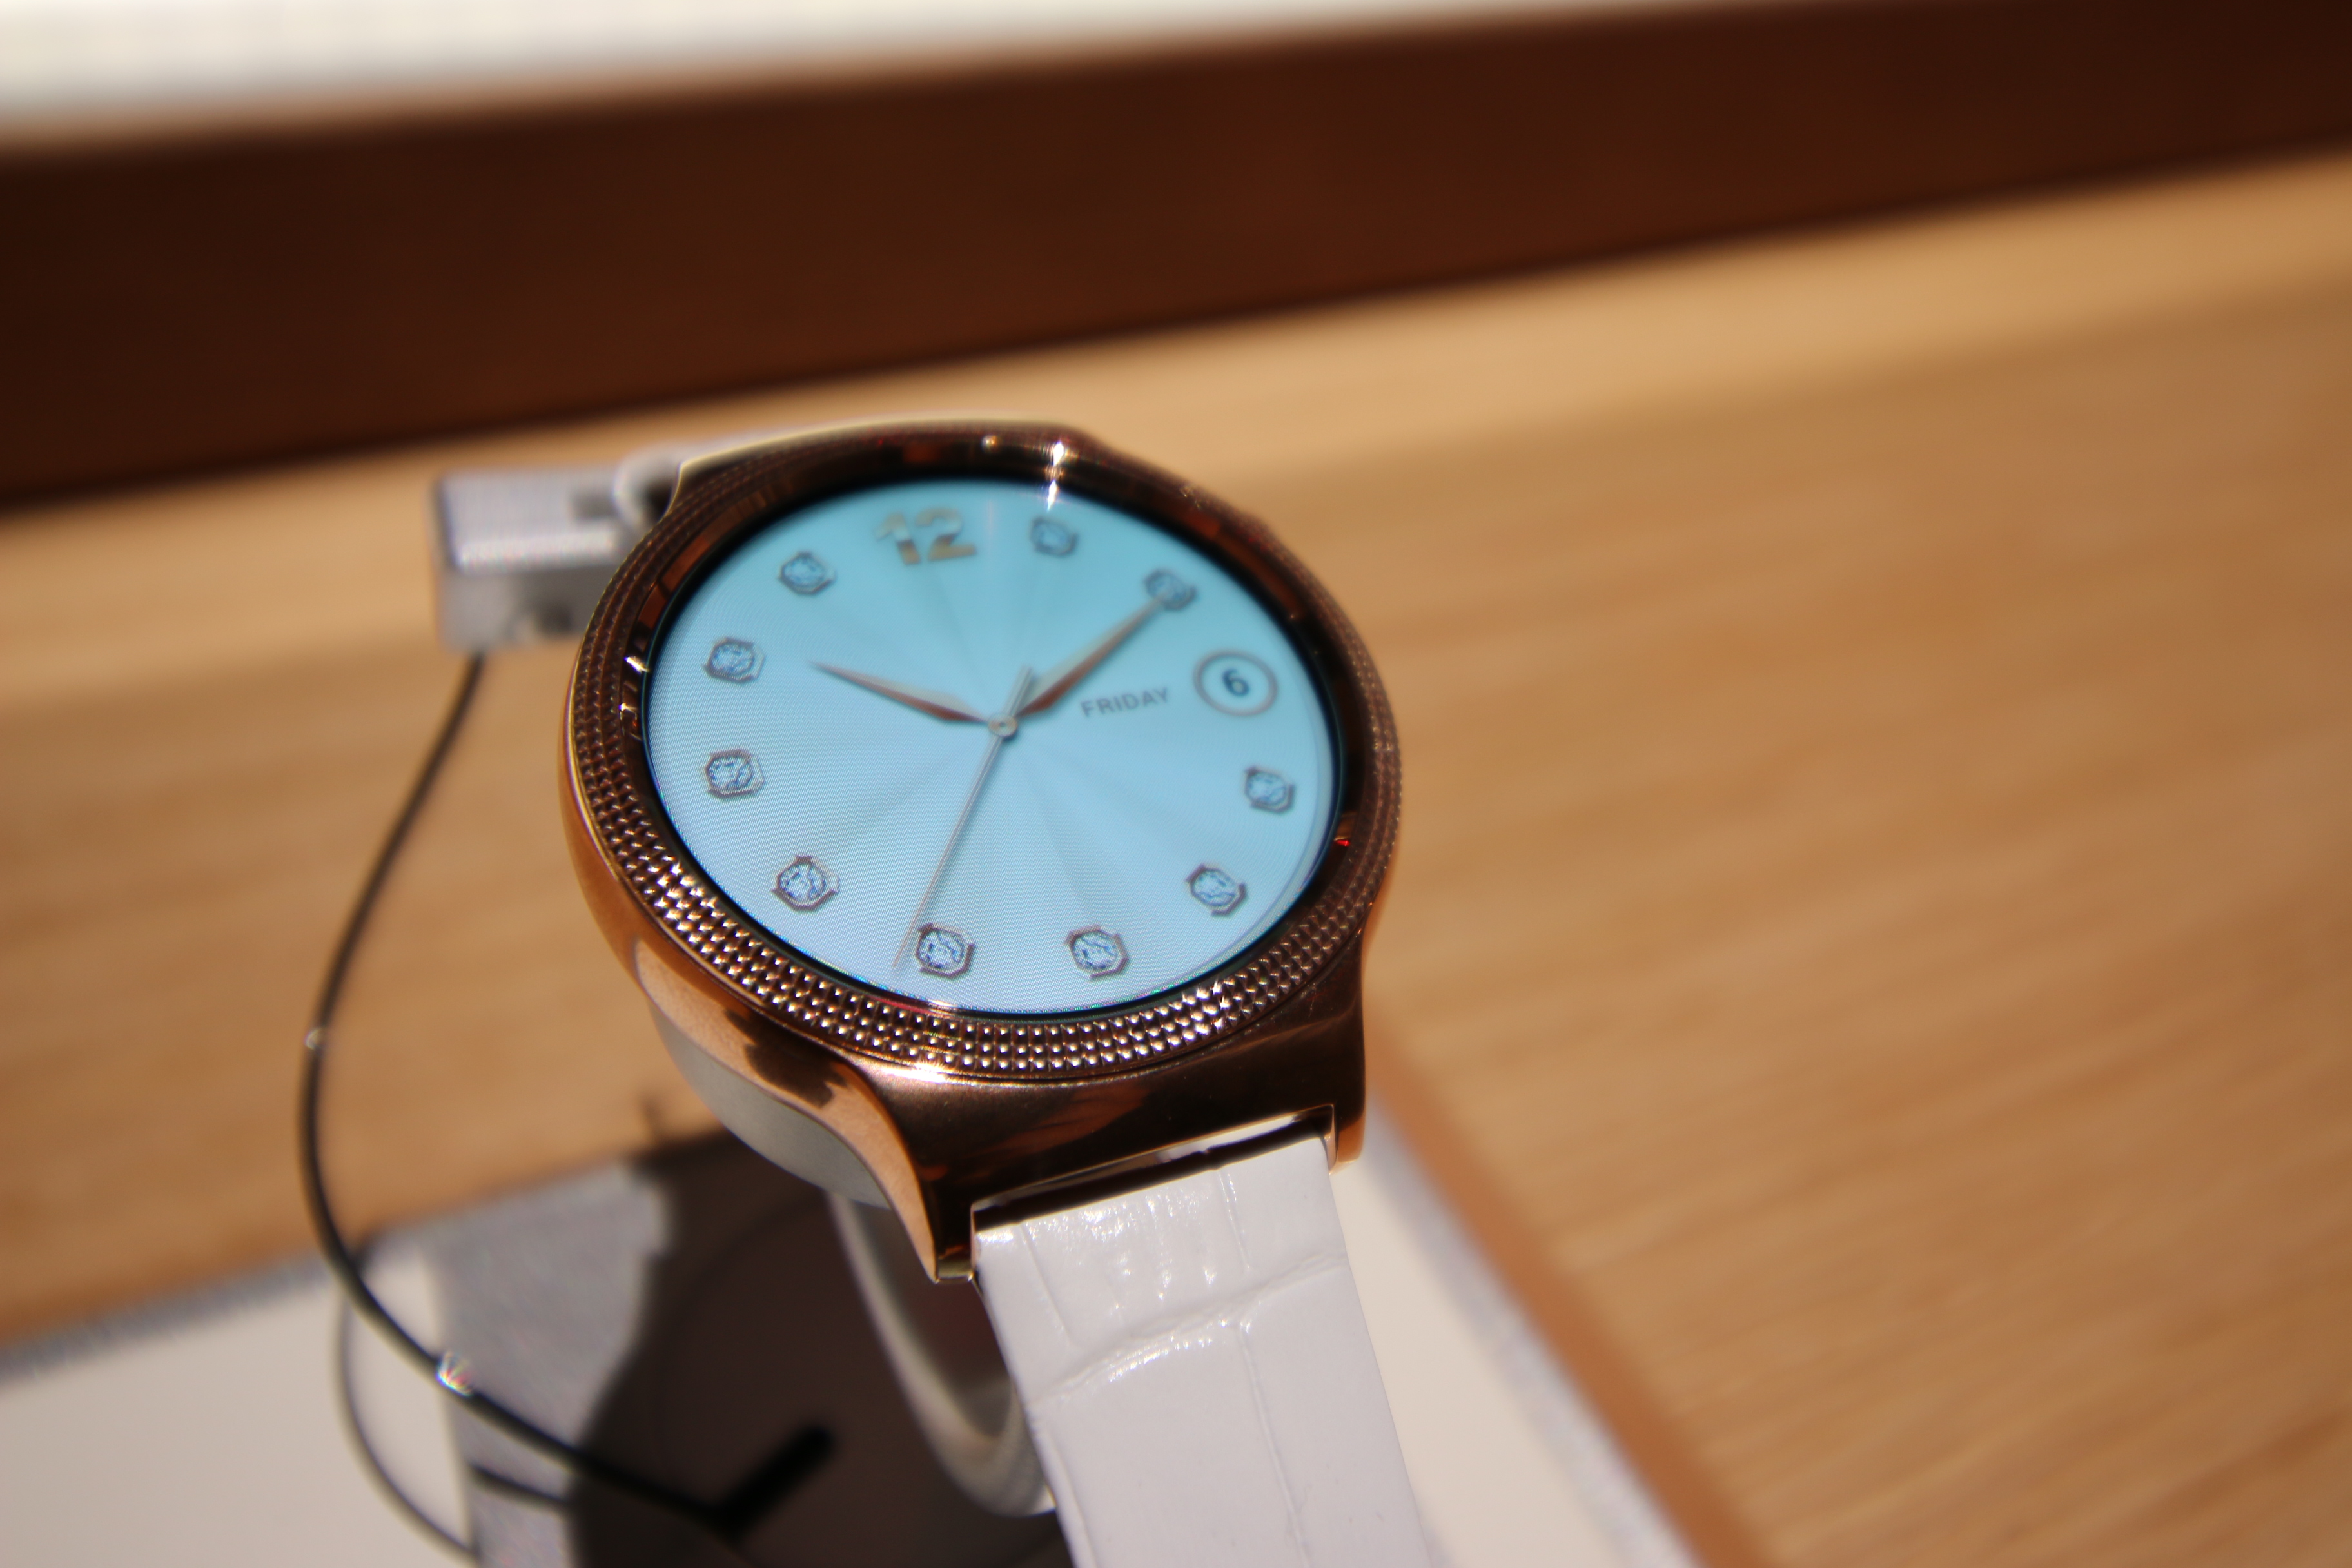 Hands-on with Huawei's smartwatches for the ladies